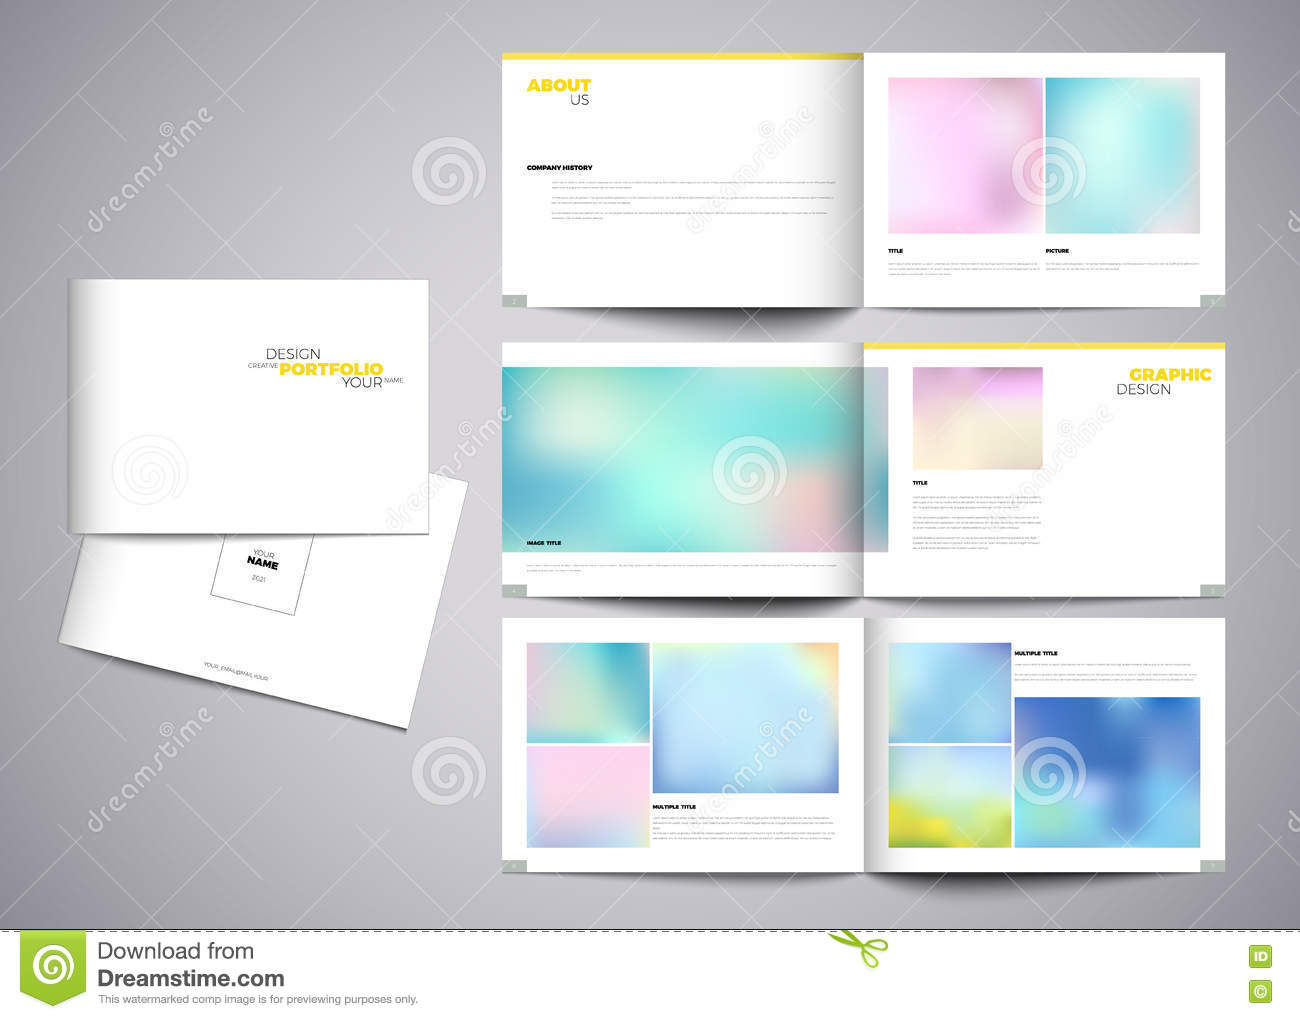 Vector portfolio template modern design stock illustration download vector portfolio template modern design stock illustration illustration of designer business 71615486 flashek Choice Image